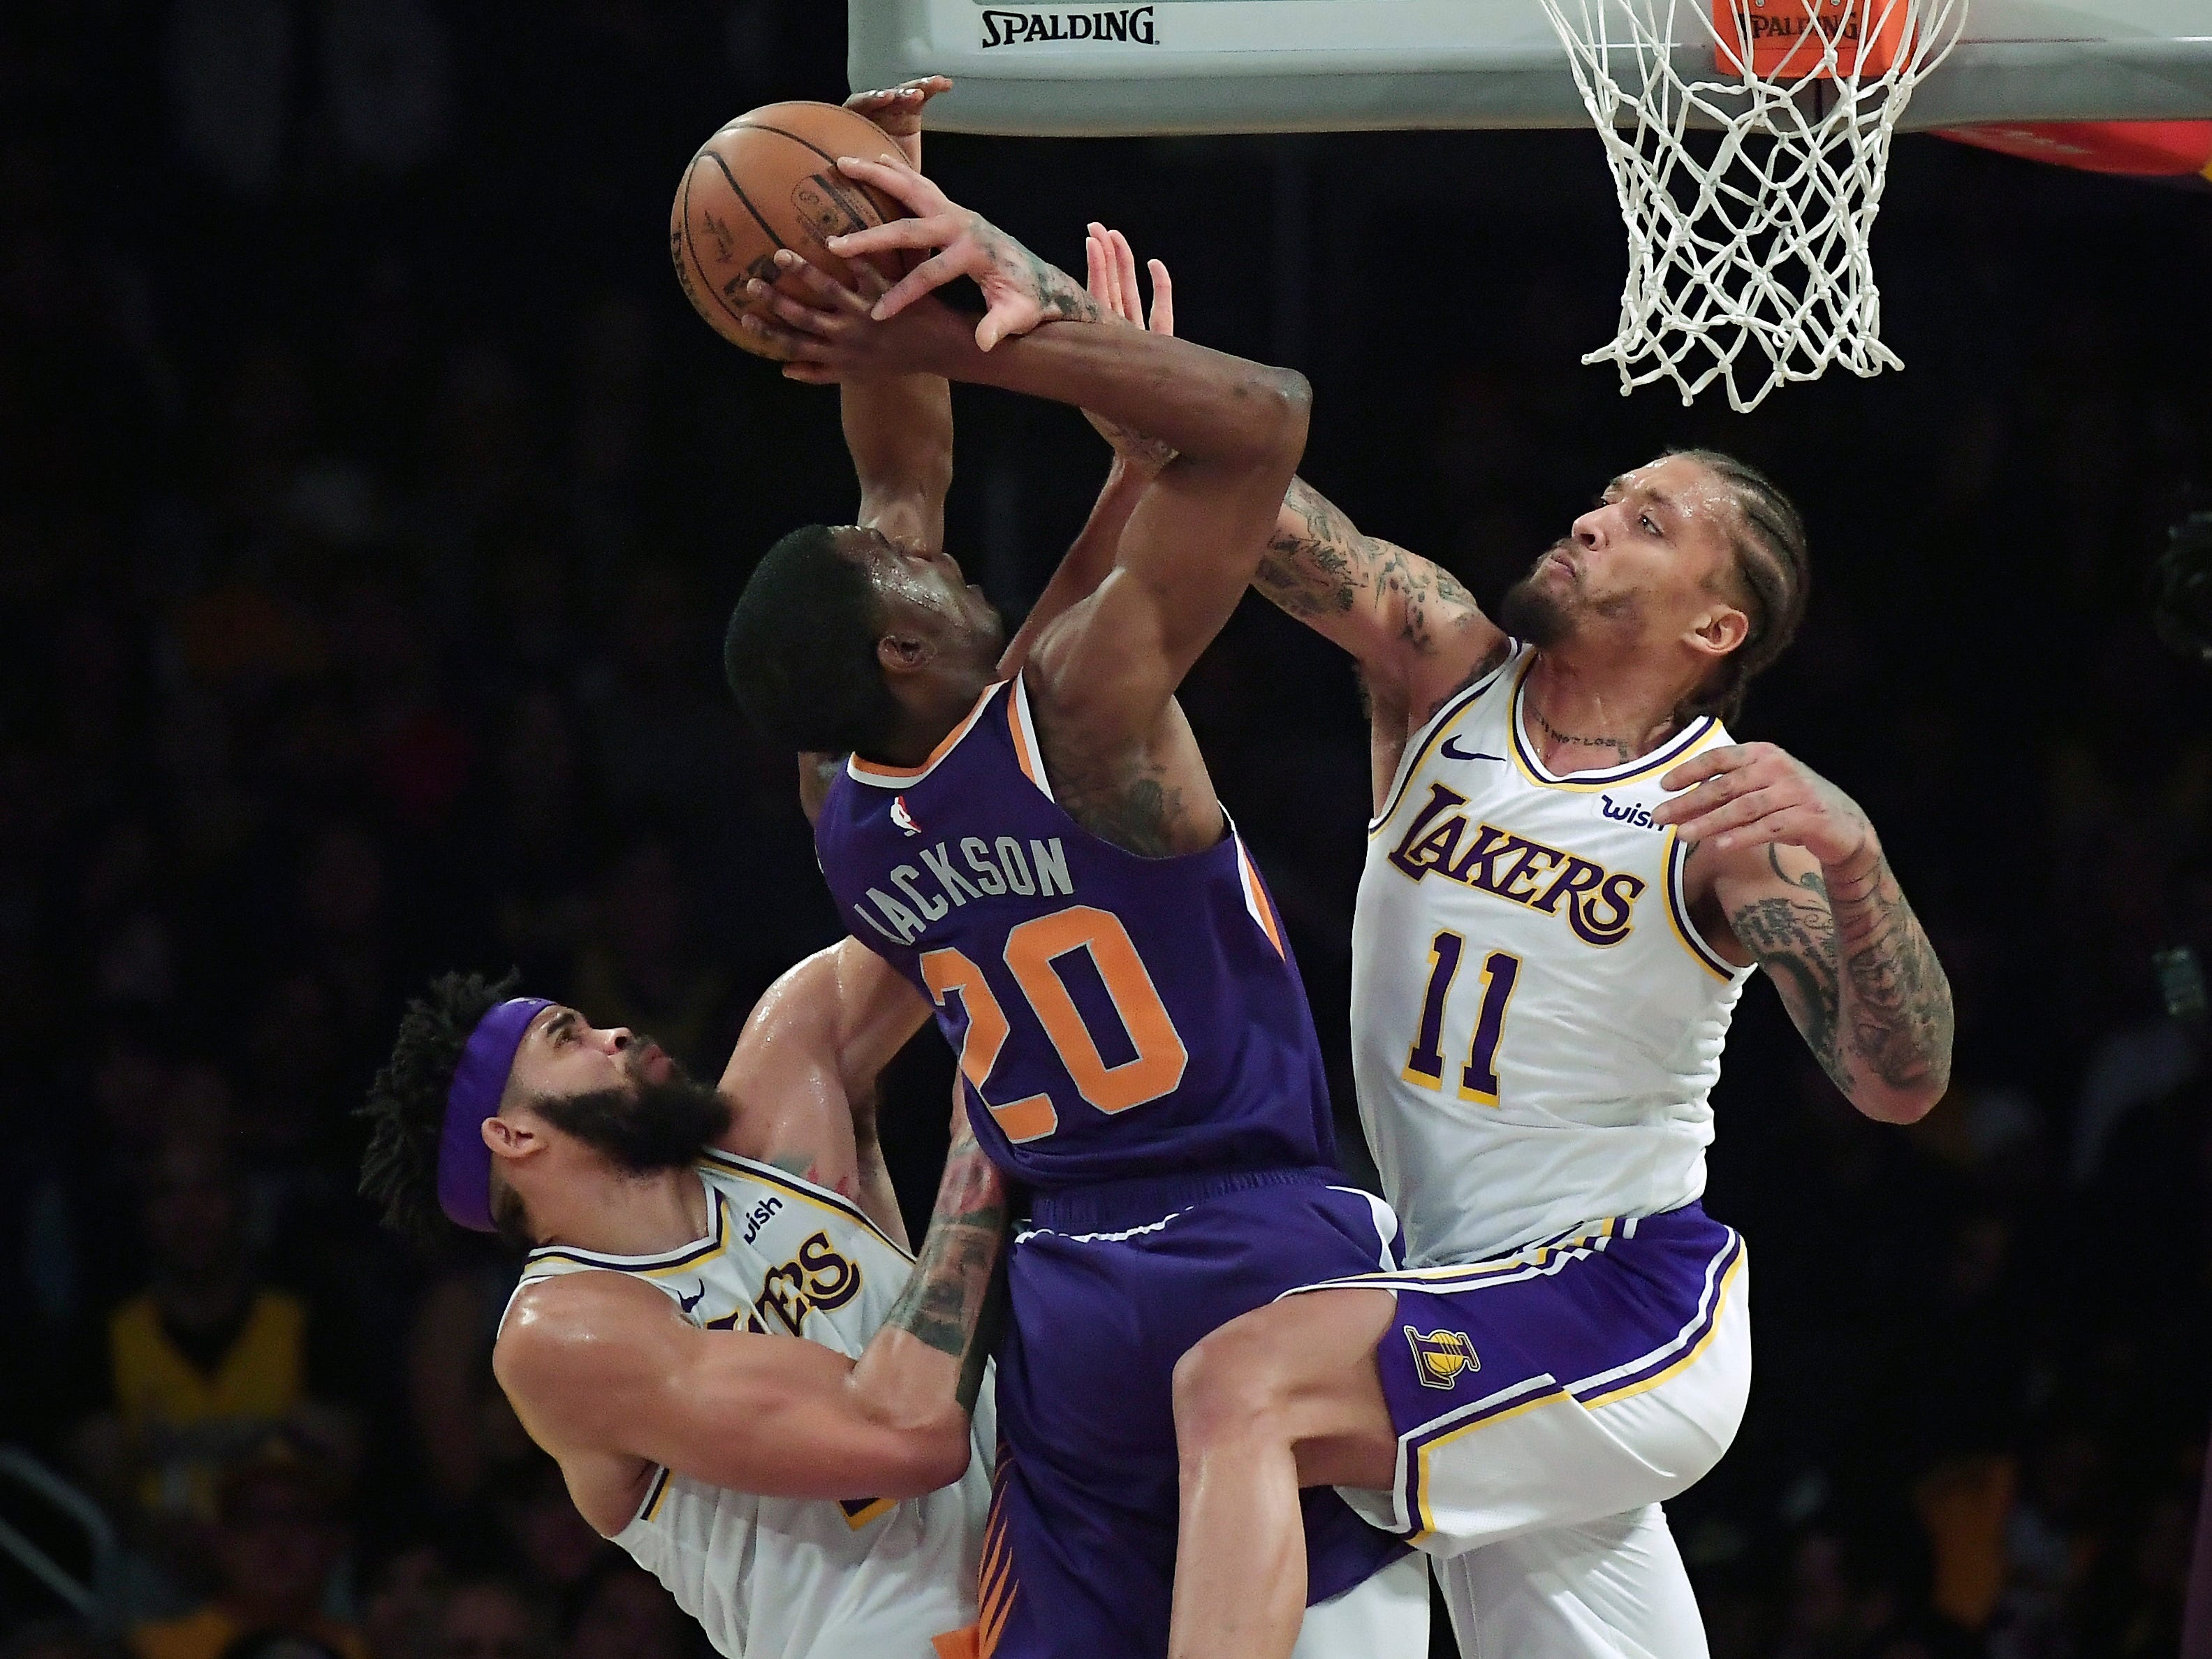 Phoenix Suns forward Josh Jackson, center, shoots as Los Angeles Lakers center JaVale McGee, left, and forward Michael Beasley defend during the first half on Sunday, Jan. 27, 2019, in Los Angeles. (AP Photo/Mark J. Terrill)